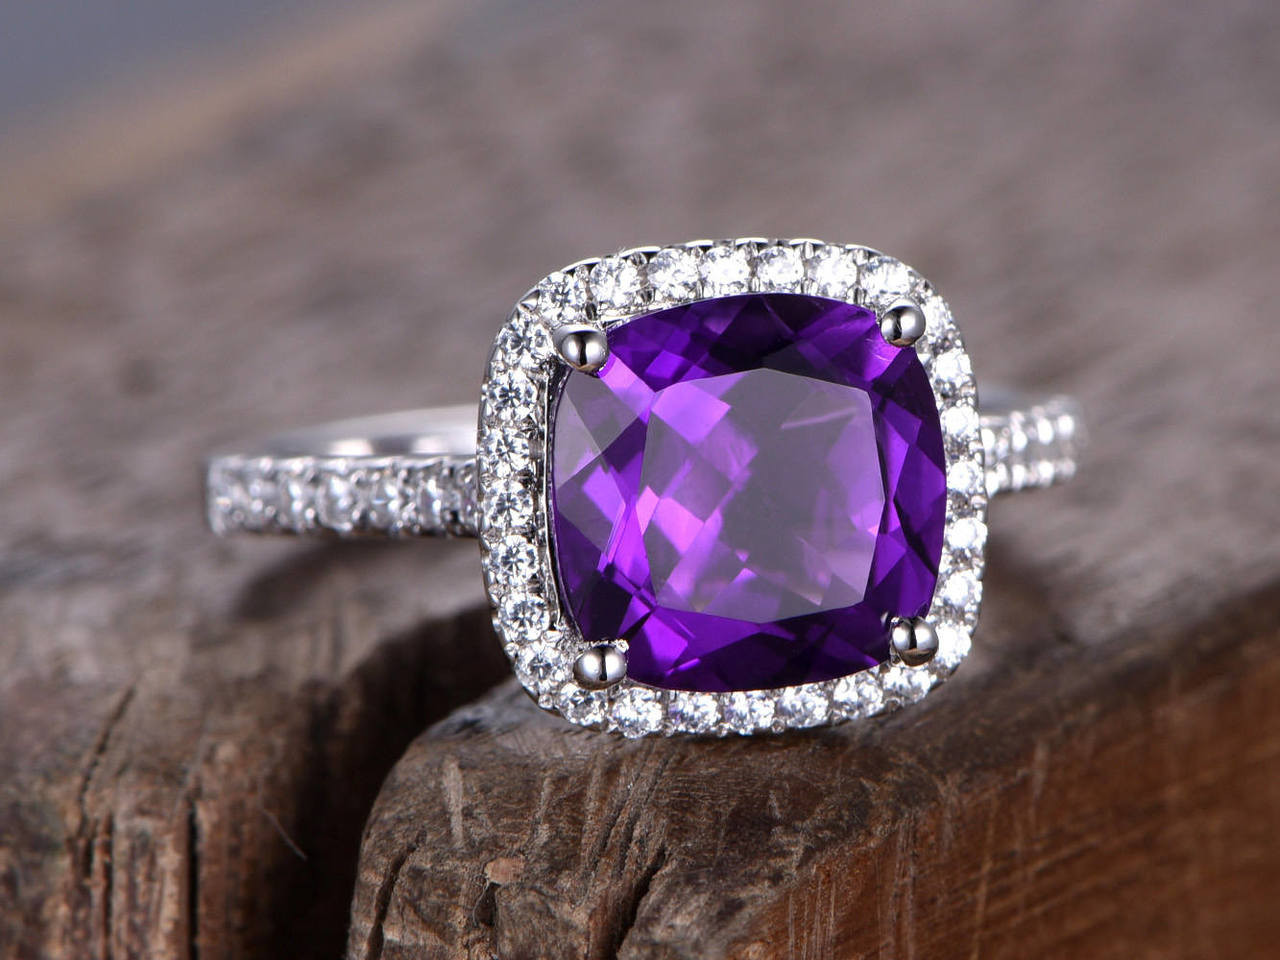 for rings silver amethyst purple her cut promise engagement sterling jewelry lajerrio round